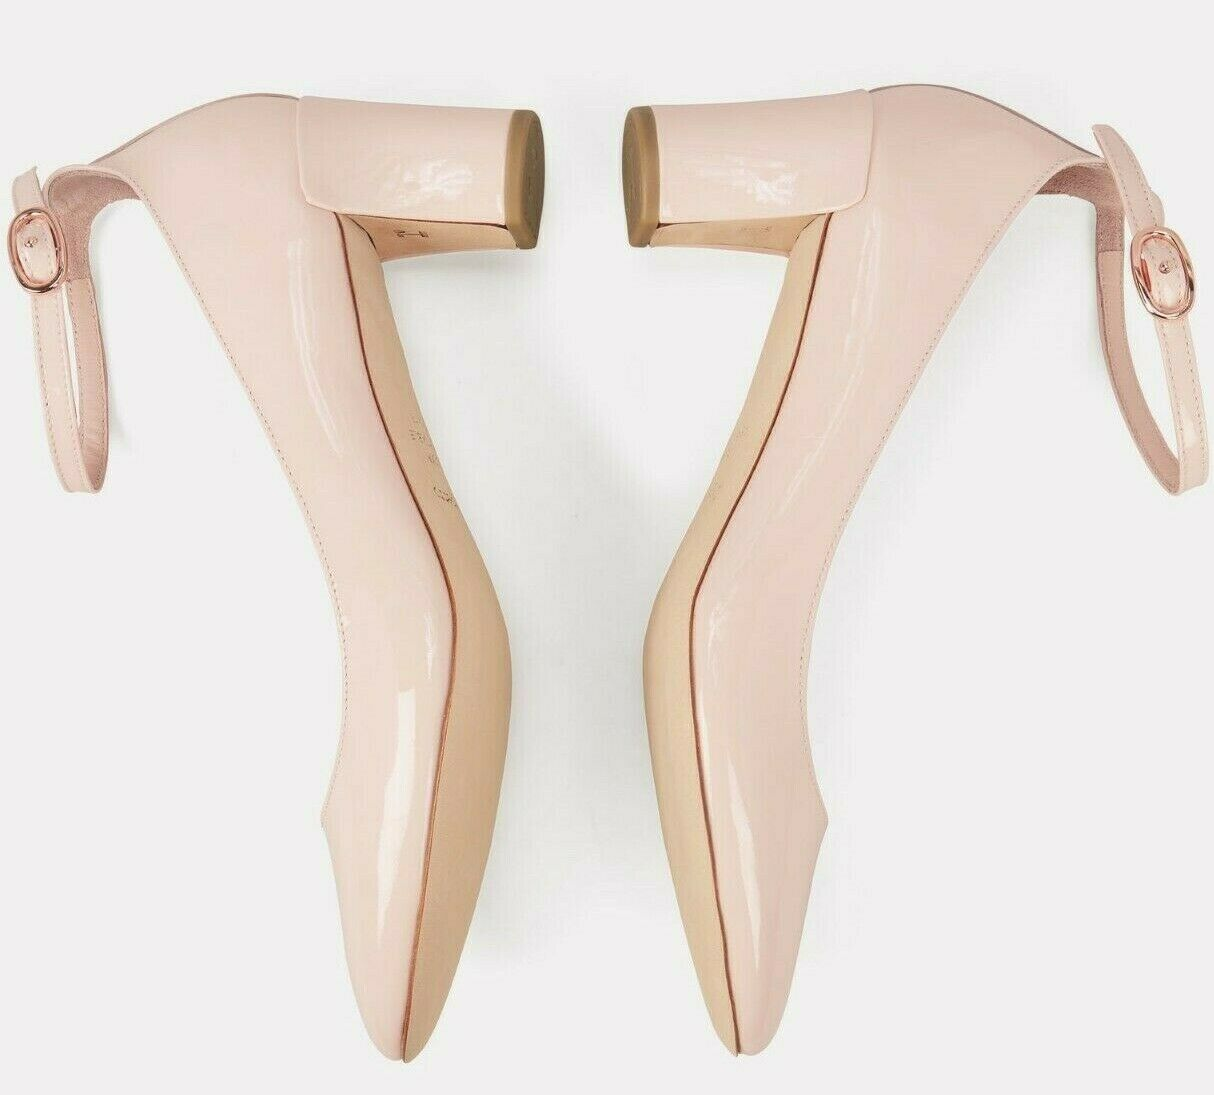 445 NEW Repetto ELECTRA MARY JANE HEELS Pumps Patent Leather NUDE Pink shoes 41